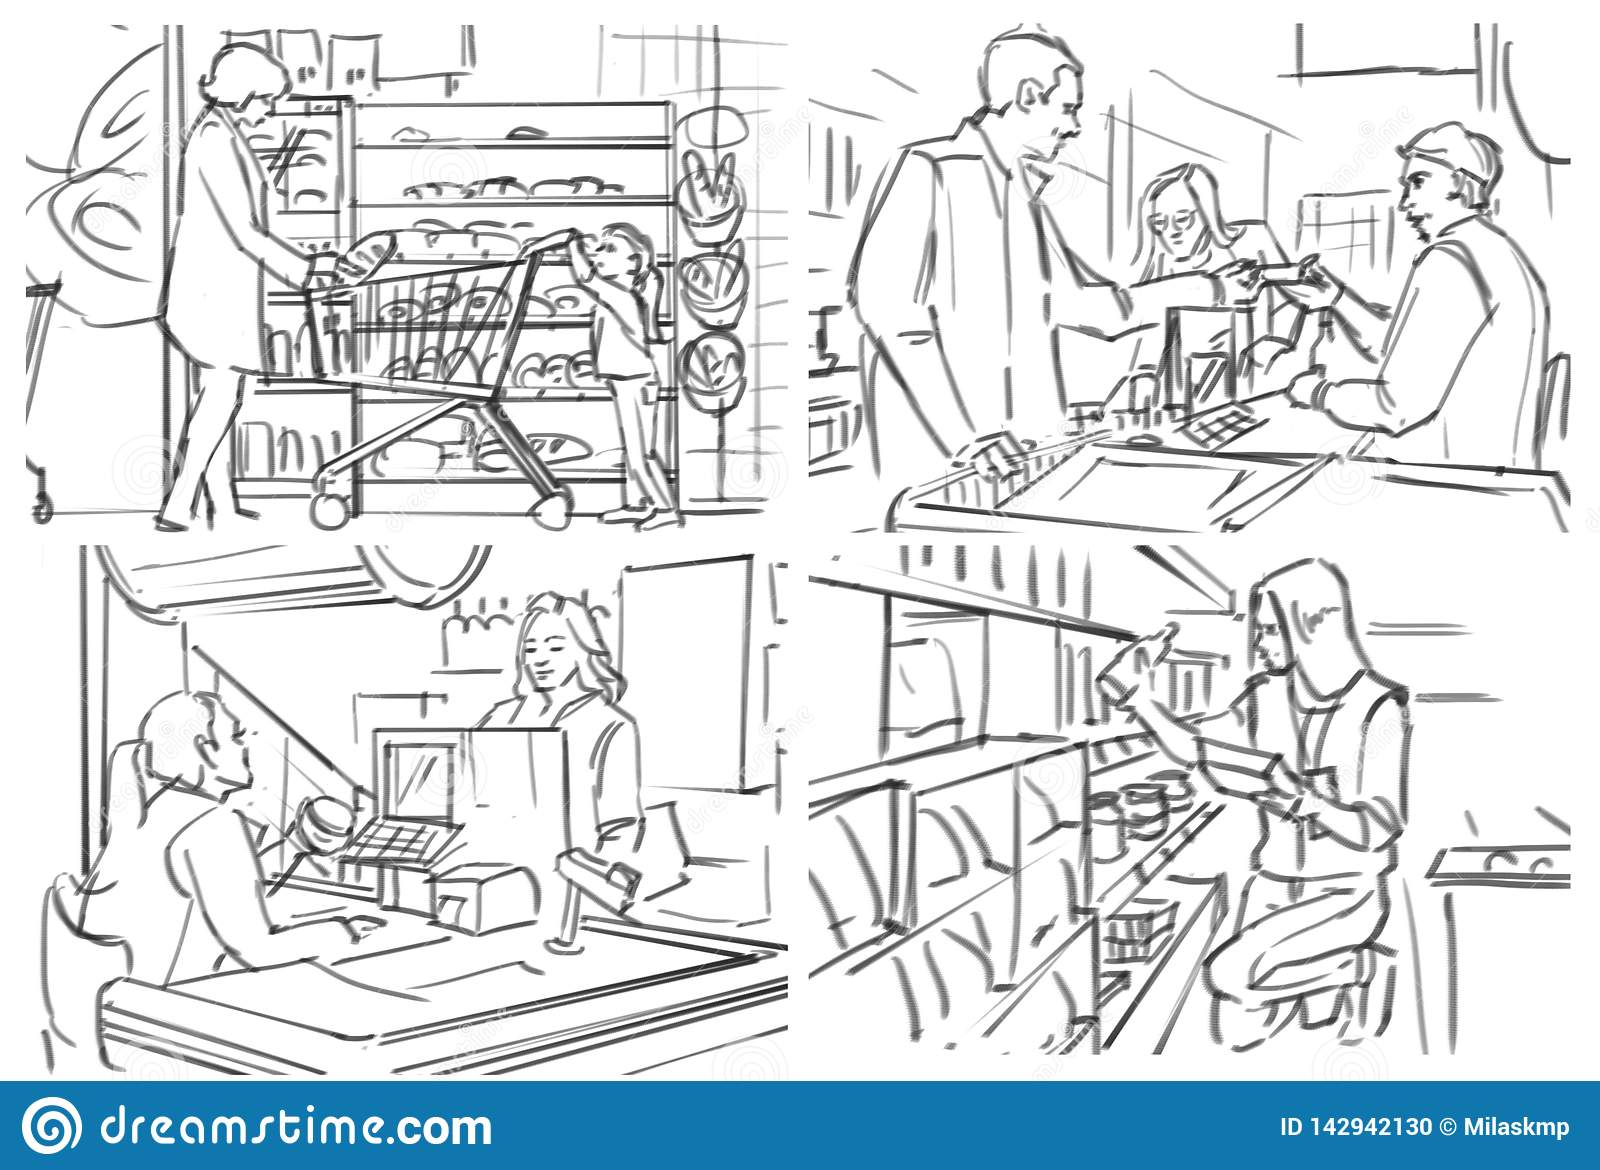 Storyboard with people shopping at grocery